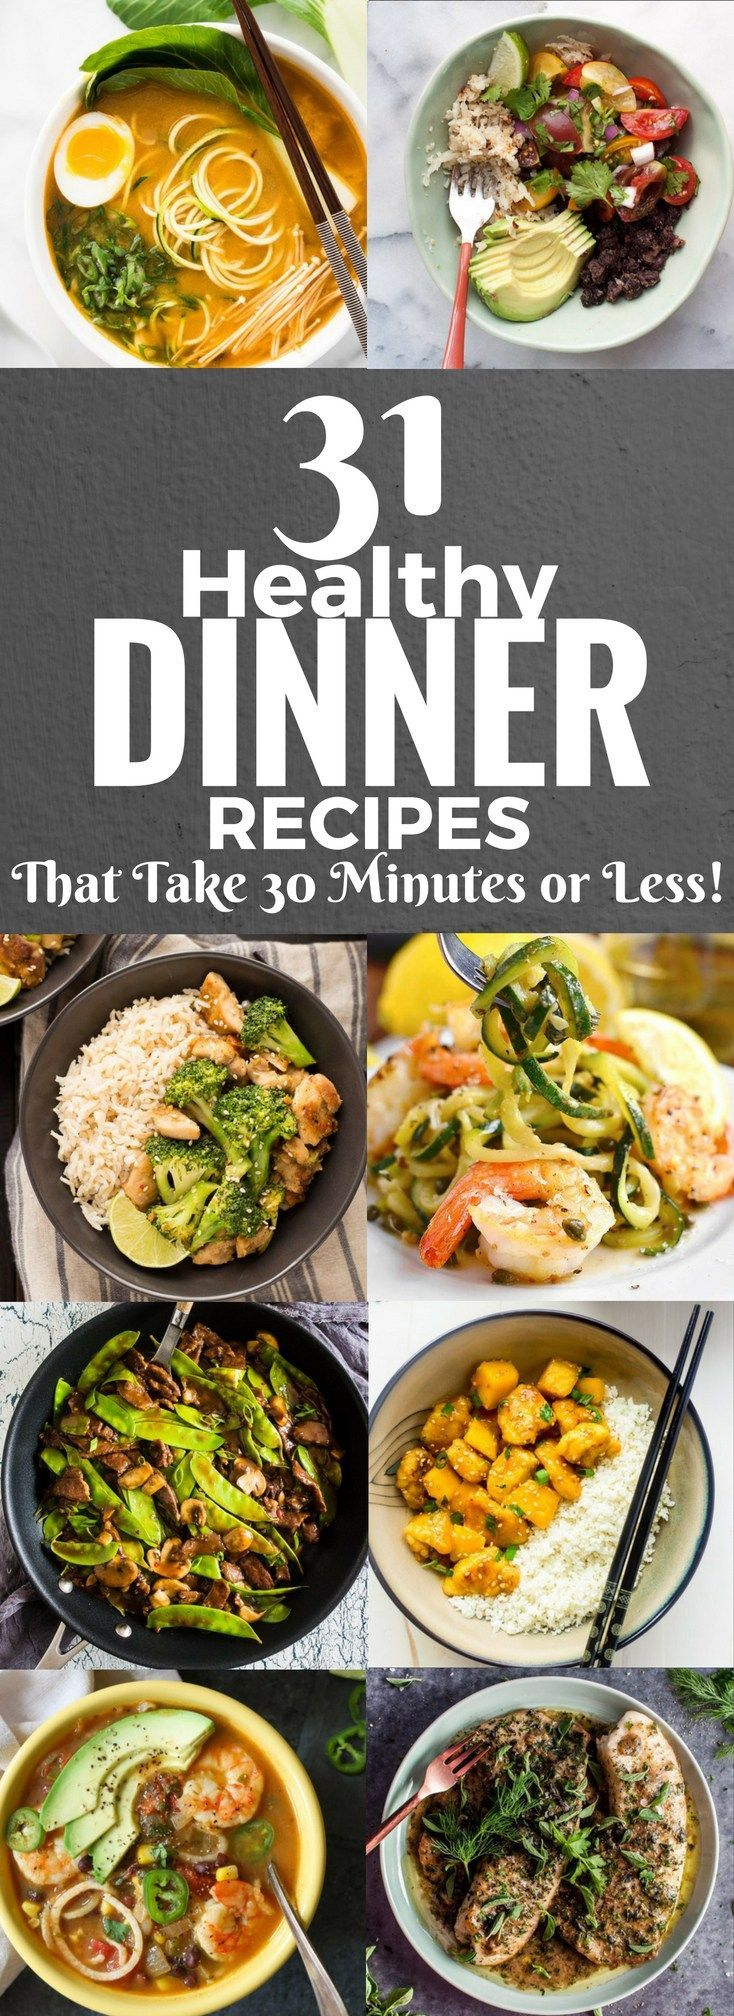 560 best meal planning ideas tips and tricks images on pinterest 31 healthy dinner recipes that take 30 minutes or less forumfinder Choice Image